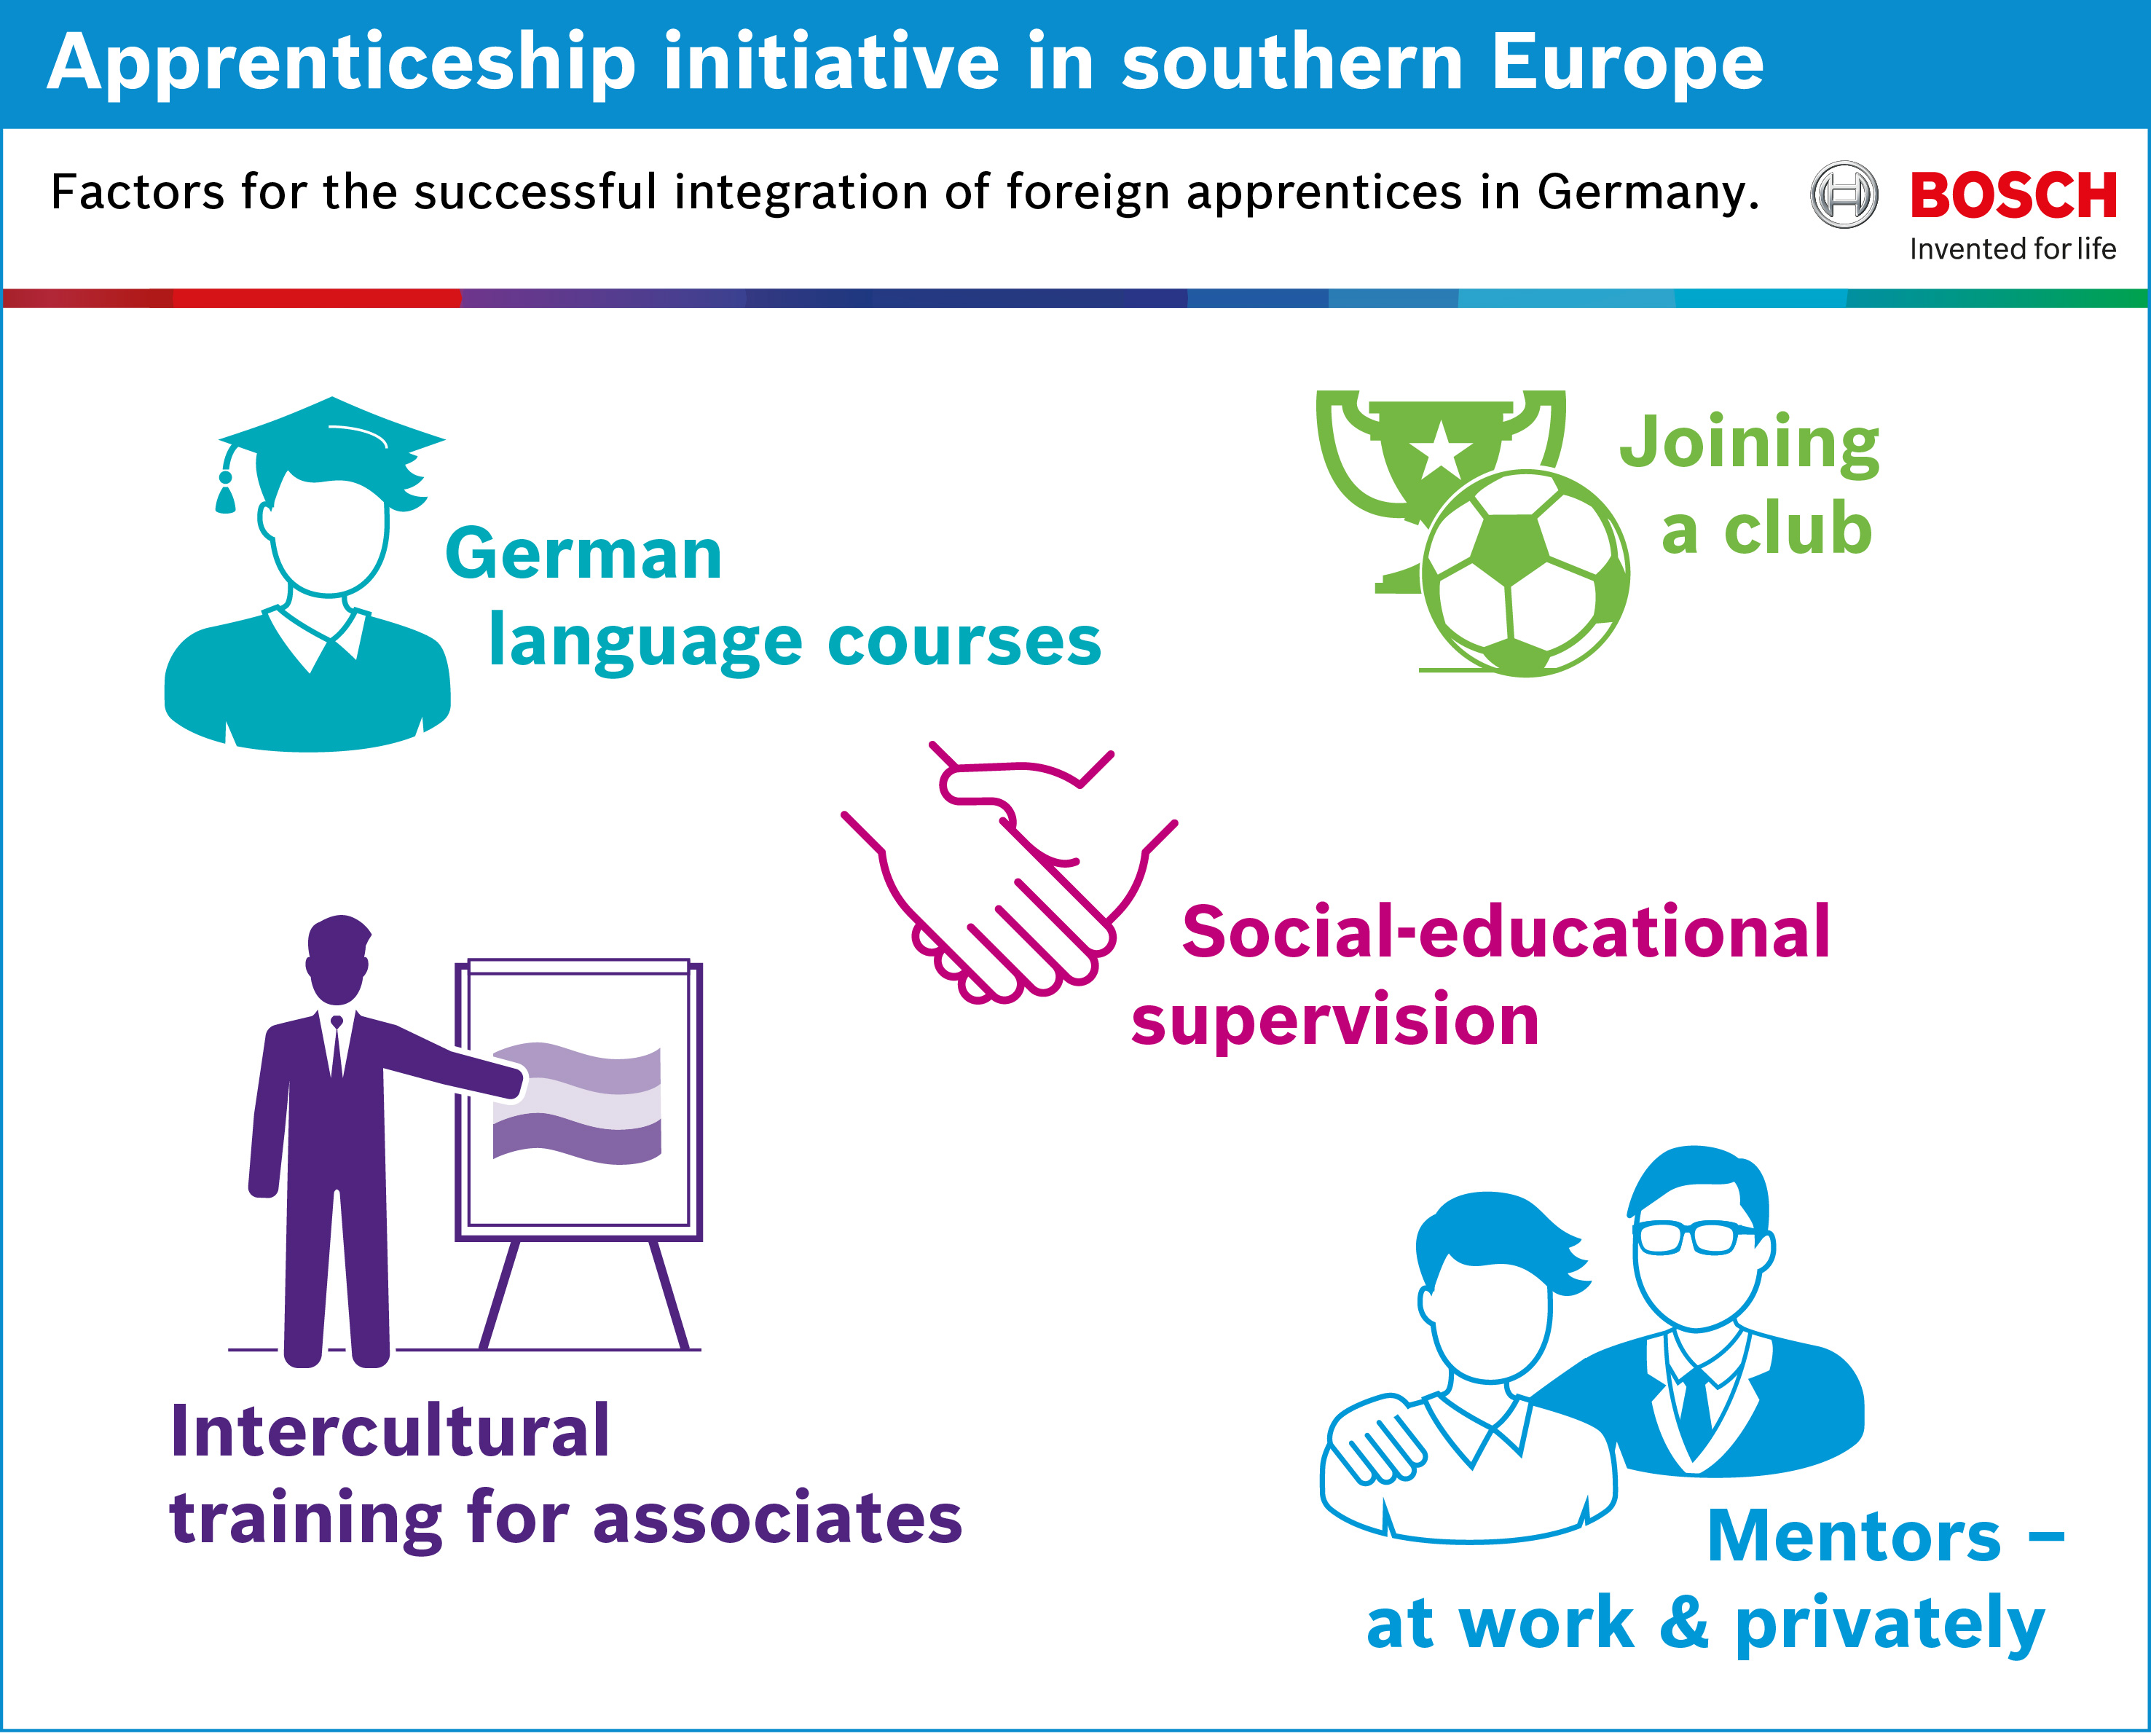 Southern Europe apprenticeship initiative – factors for the successful integration of foreign apprentices in Germany